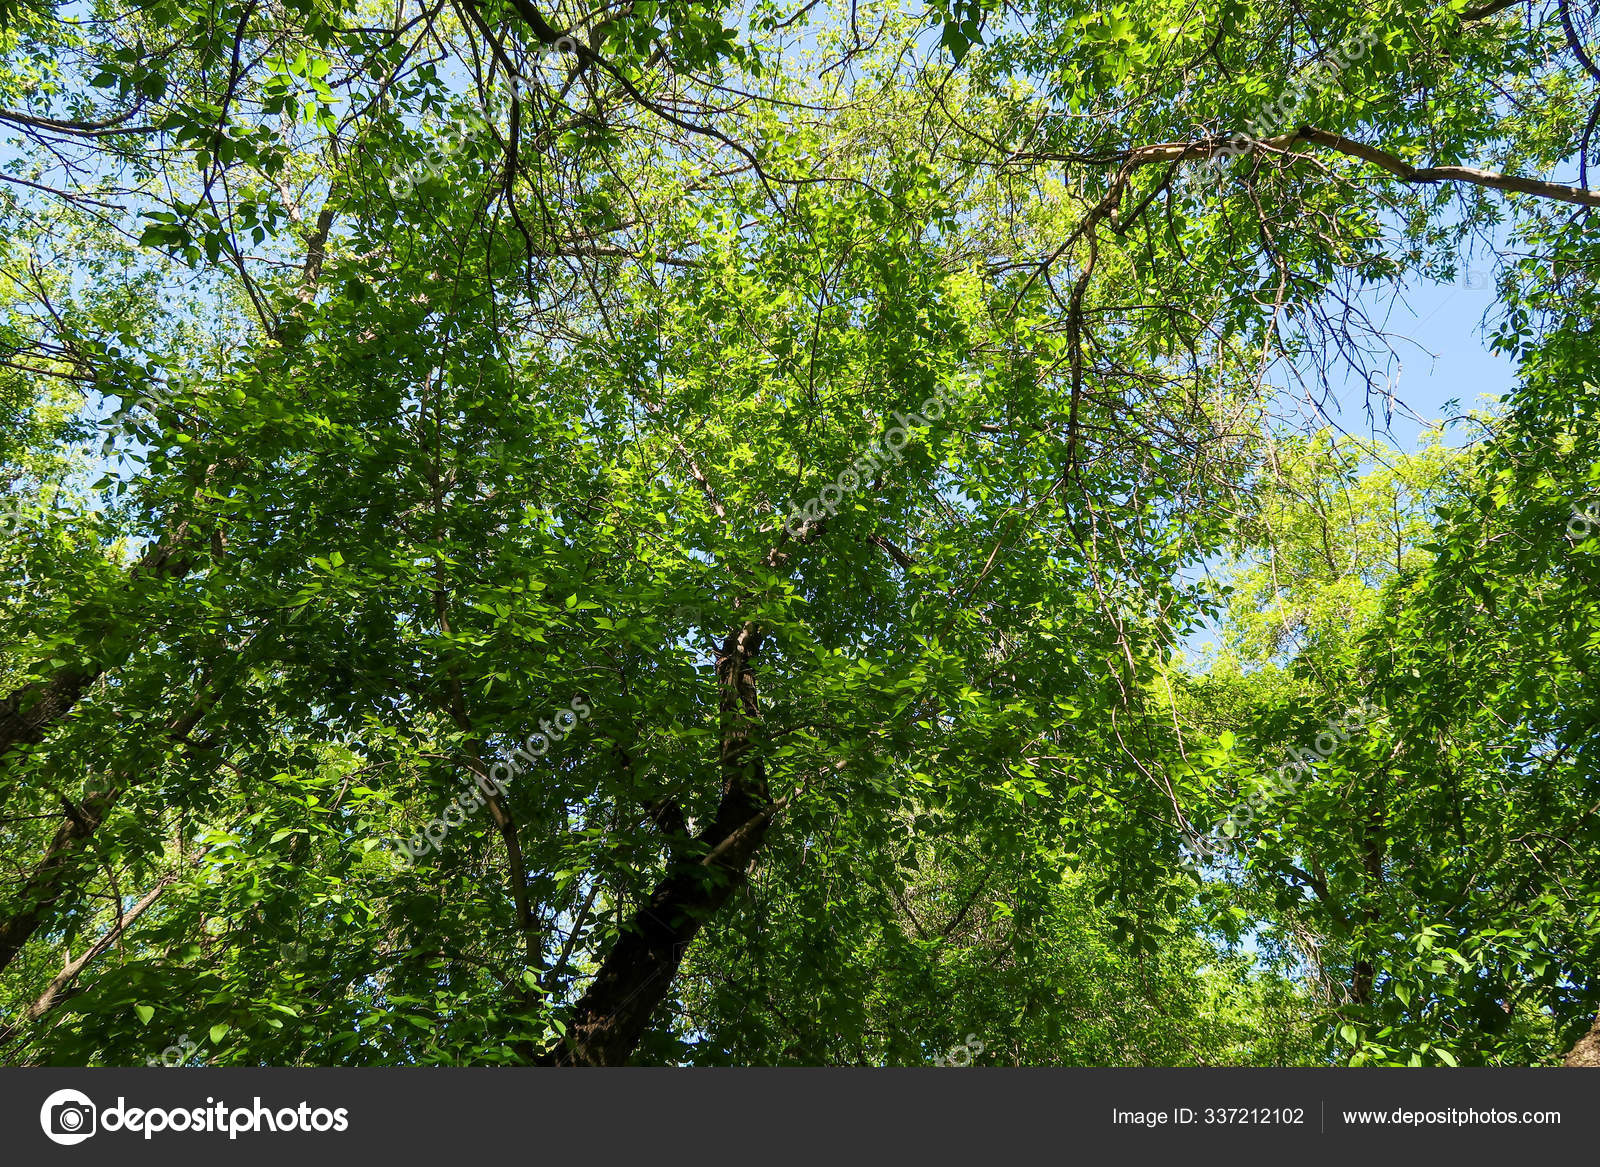 Green Leaves Trees View Blue Sky Spring Nature Stock Photo C Kzwwsko 337212102